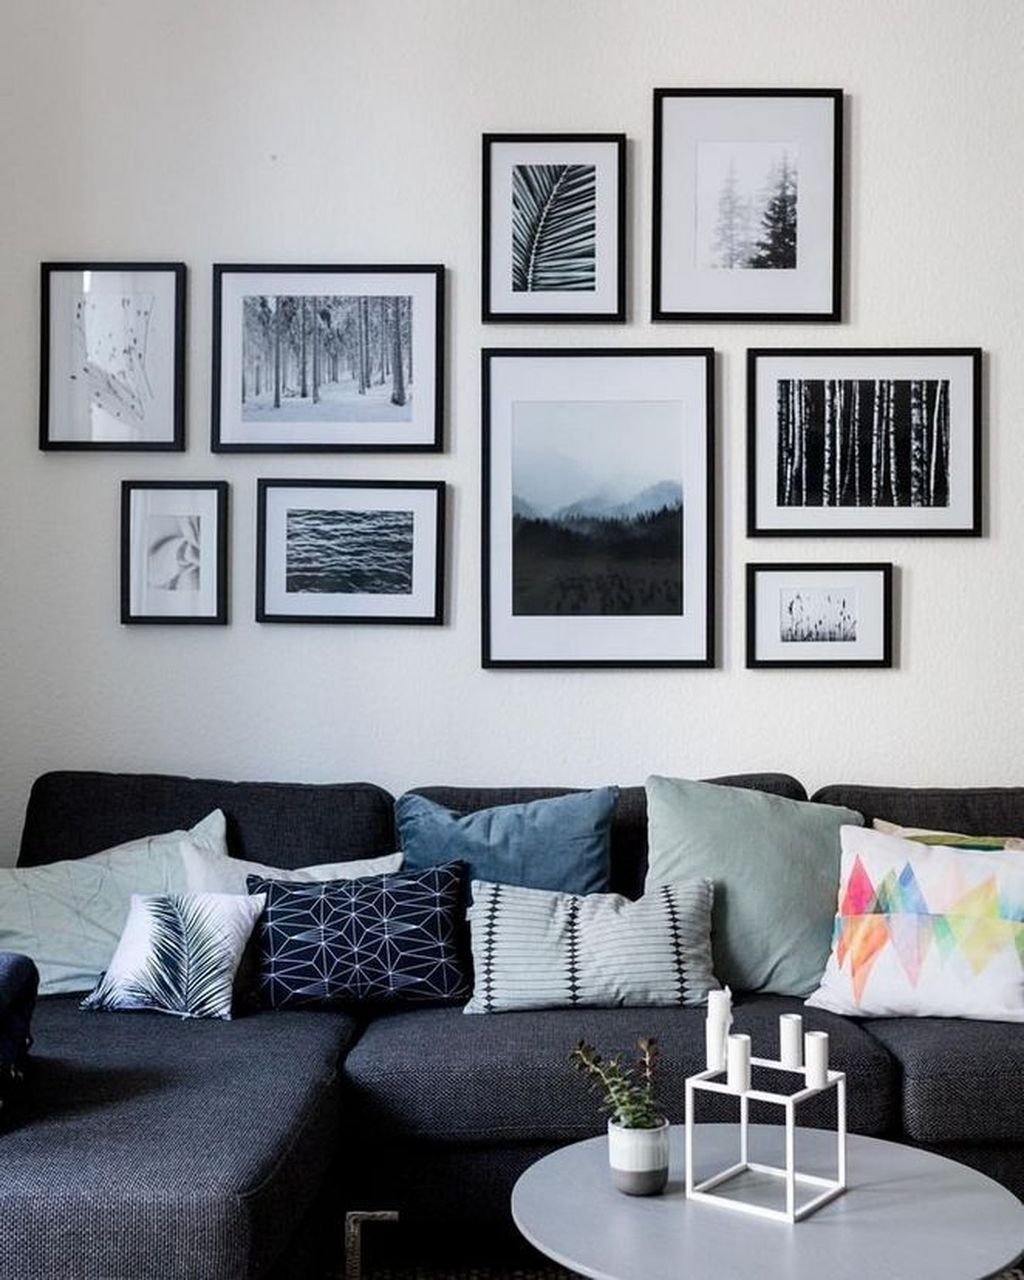 50 The Best Living Room Decorating Ideas Trends 2019 Pimphomee Gallery Wall Living Room Wall Decor Living Room Room Wall Decor